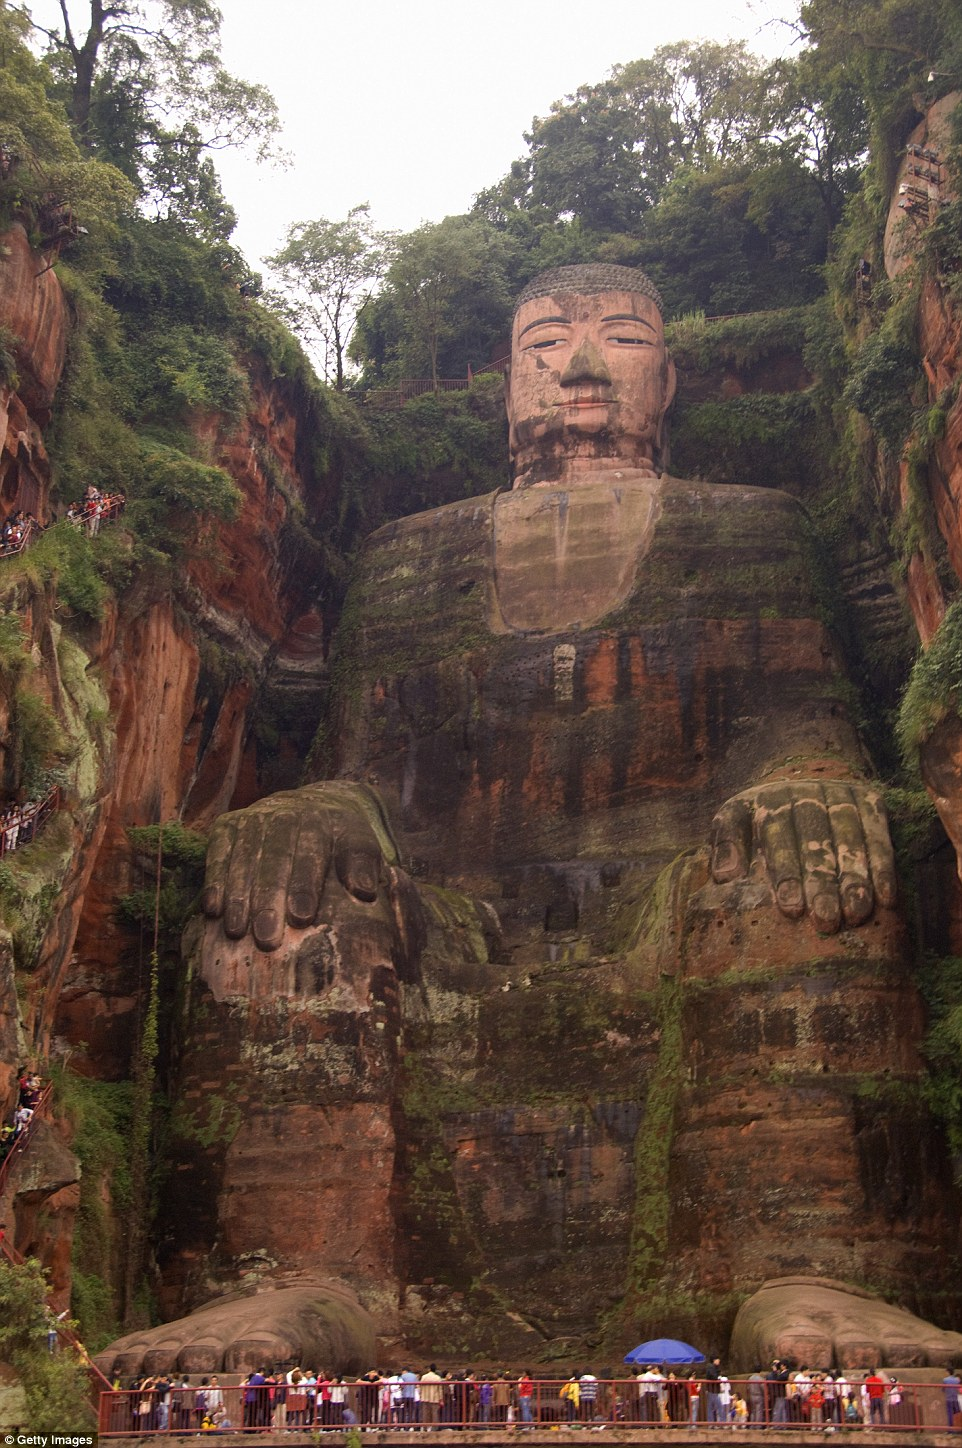 Lè Shān's gigantic, 1,200-year-old Grand Buddha sits carved from a cliff face overlooking three busy rivers: the Dàdù, Mín, and Qīngyì. The giant statue has fingernails larger than the average human, and attracts multitudes of tourists to the area